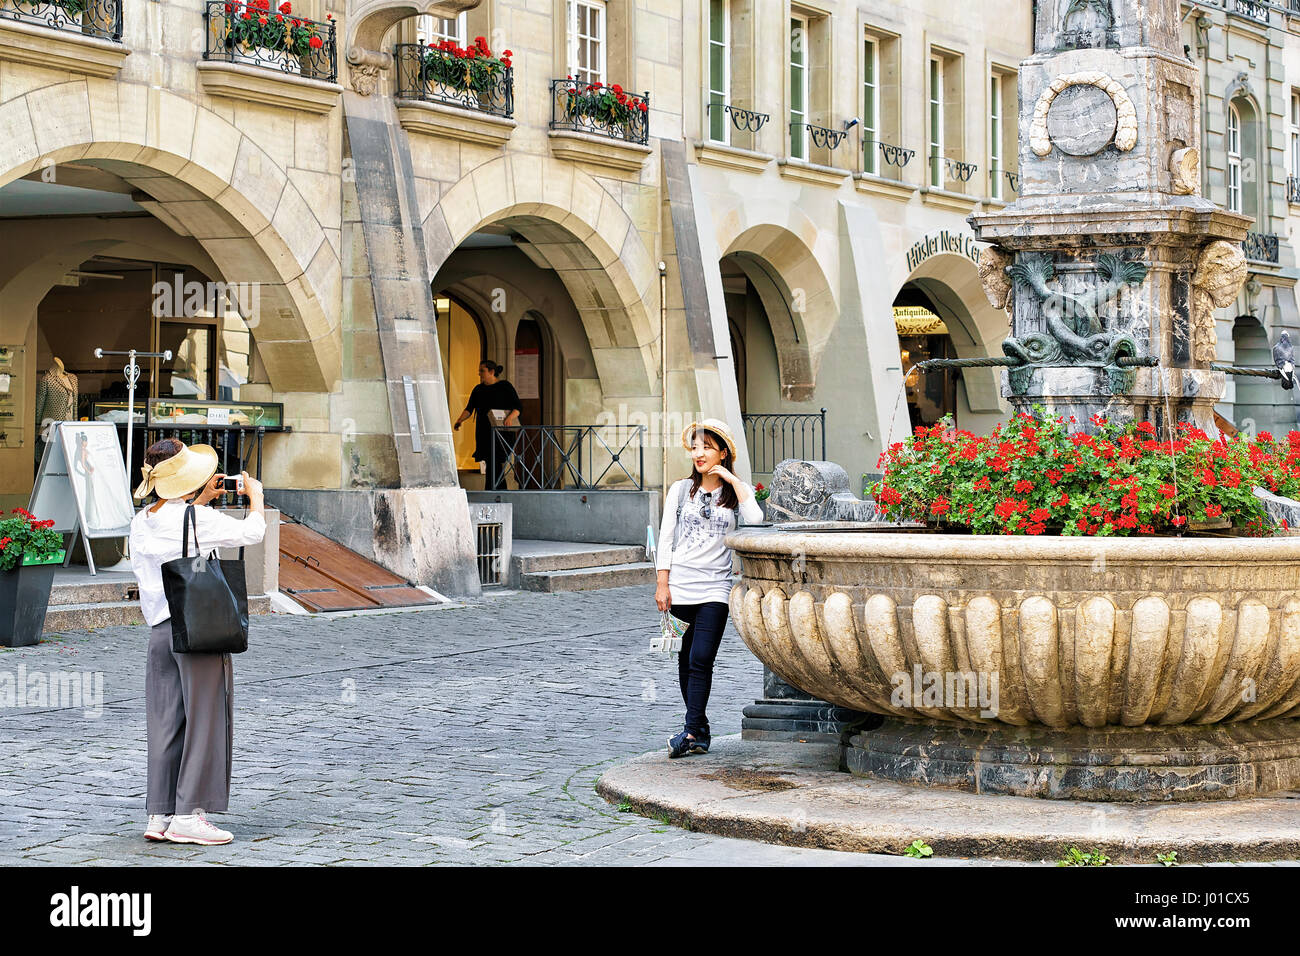 Asia Küche Berne Bern, Switzerland - August 31, 2016: Asian Female Tourists